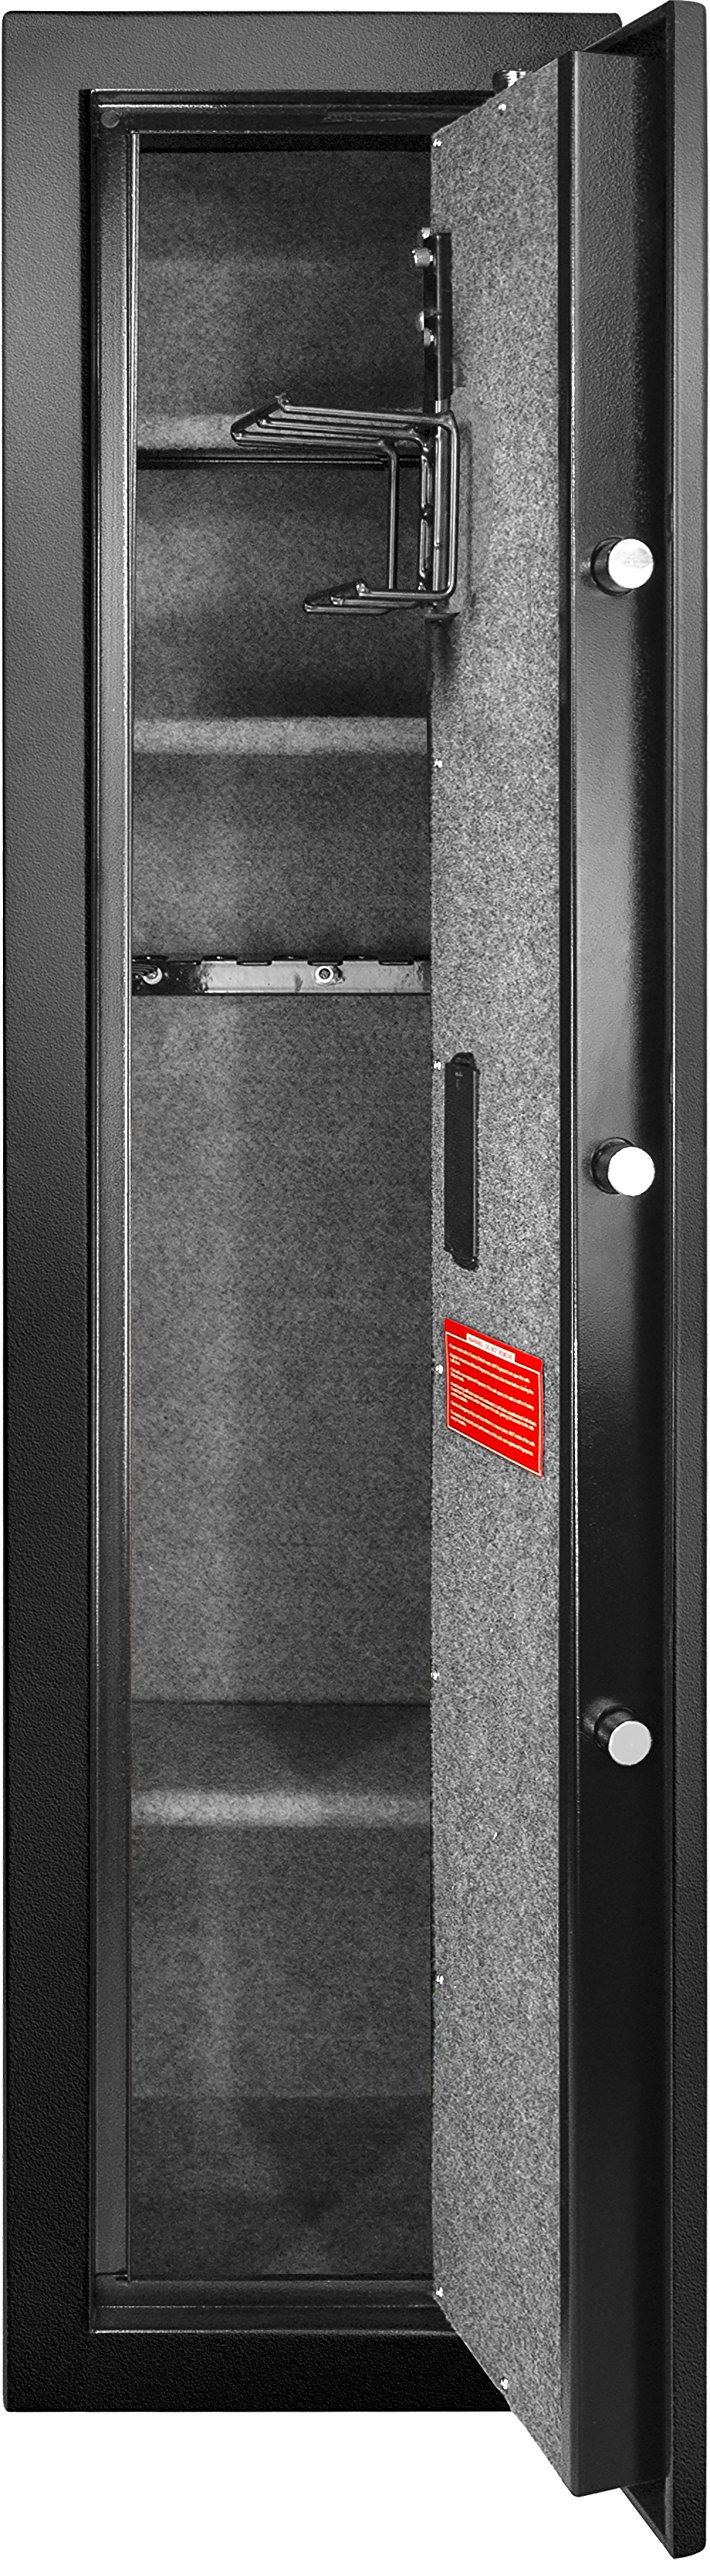 Barska Large Biometric Safe by BARSKA (Image #4)